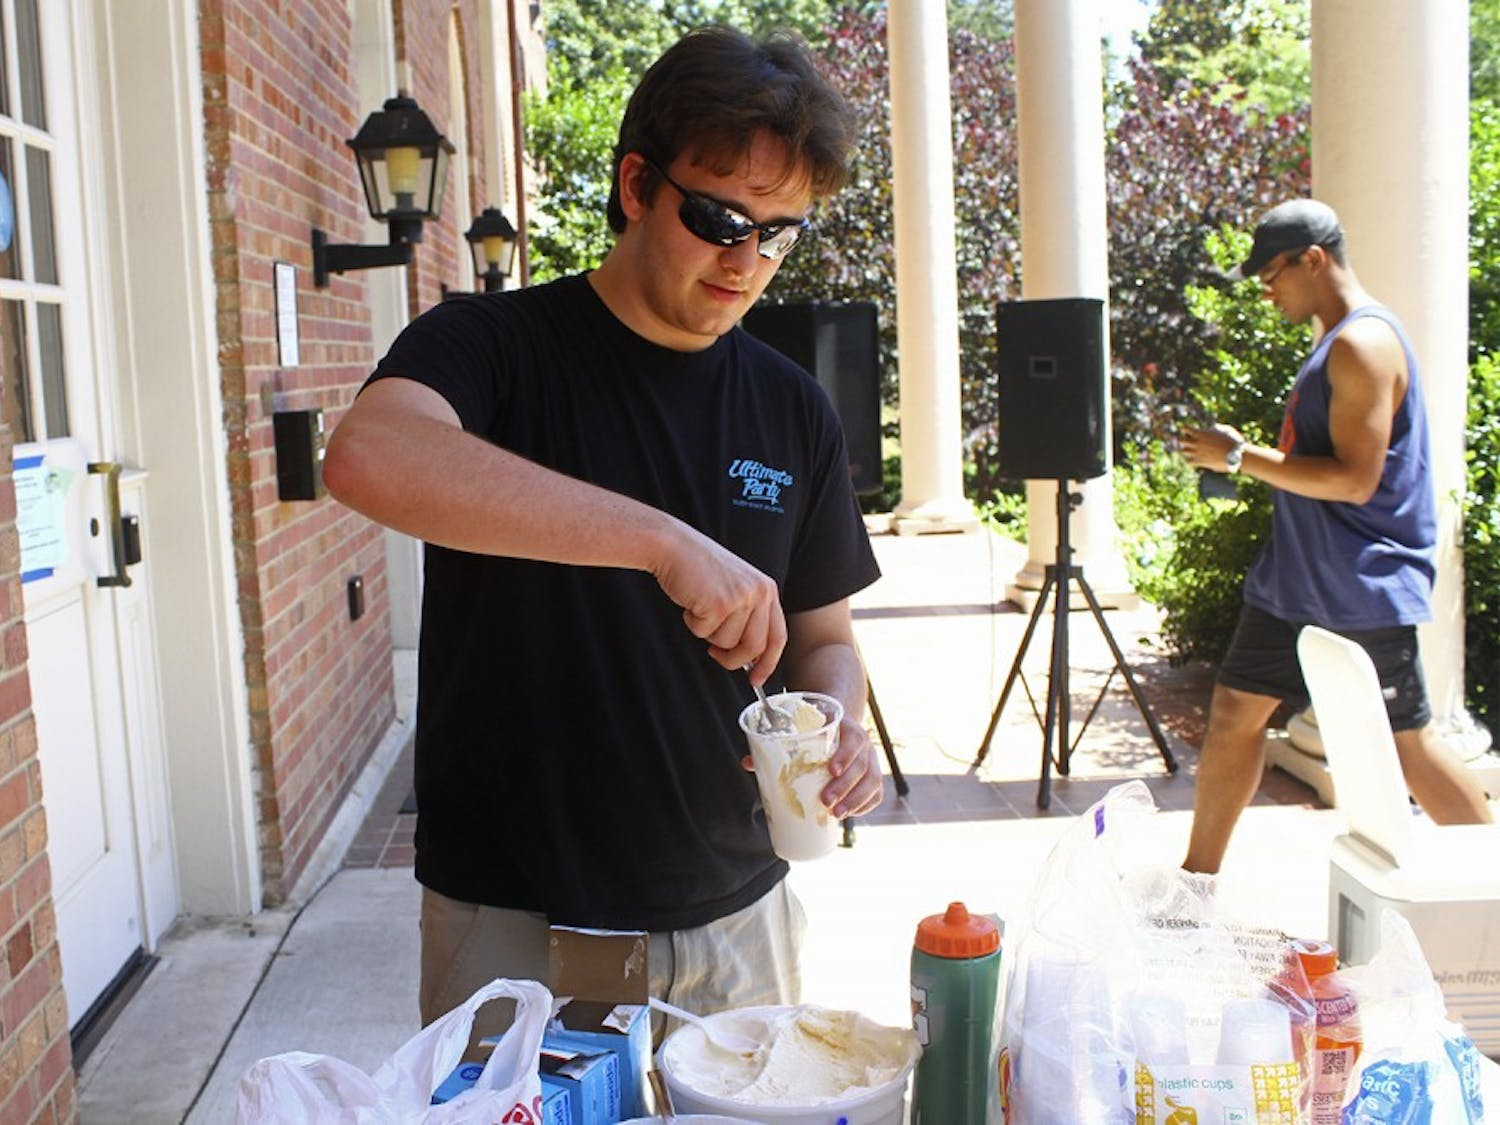 Junior Jarratt Edwards makes a homemade ice cream sundae at Kenan Fest held at Kenan Quad on Friday afternoon